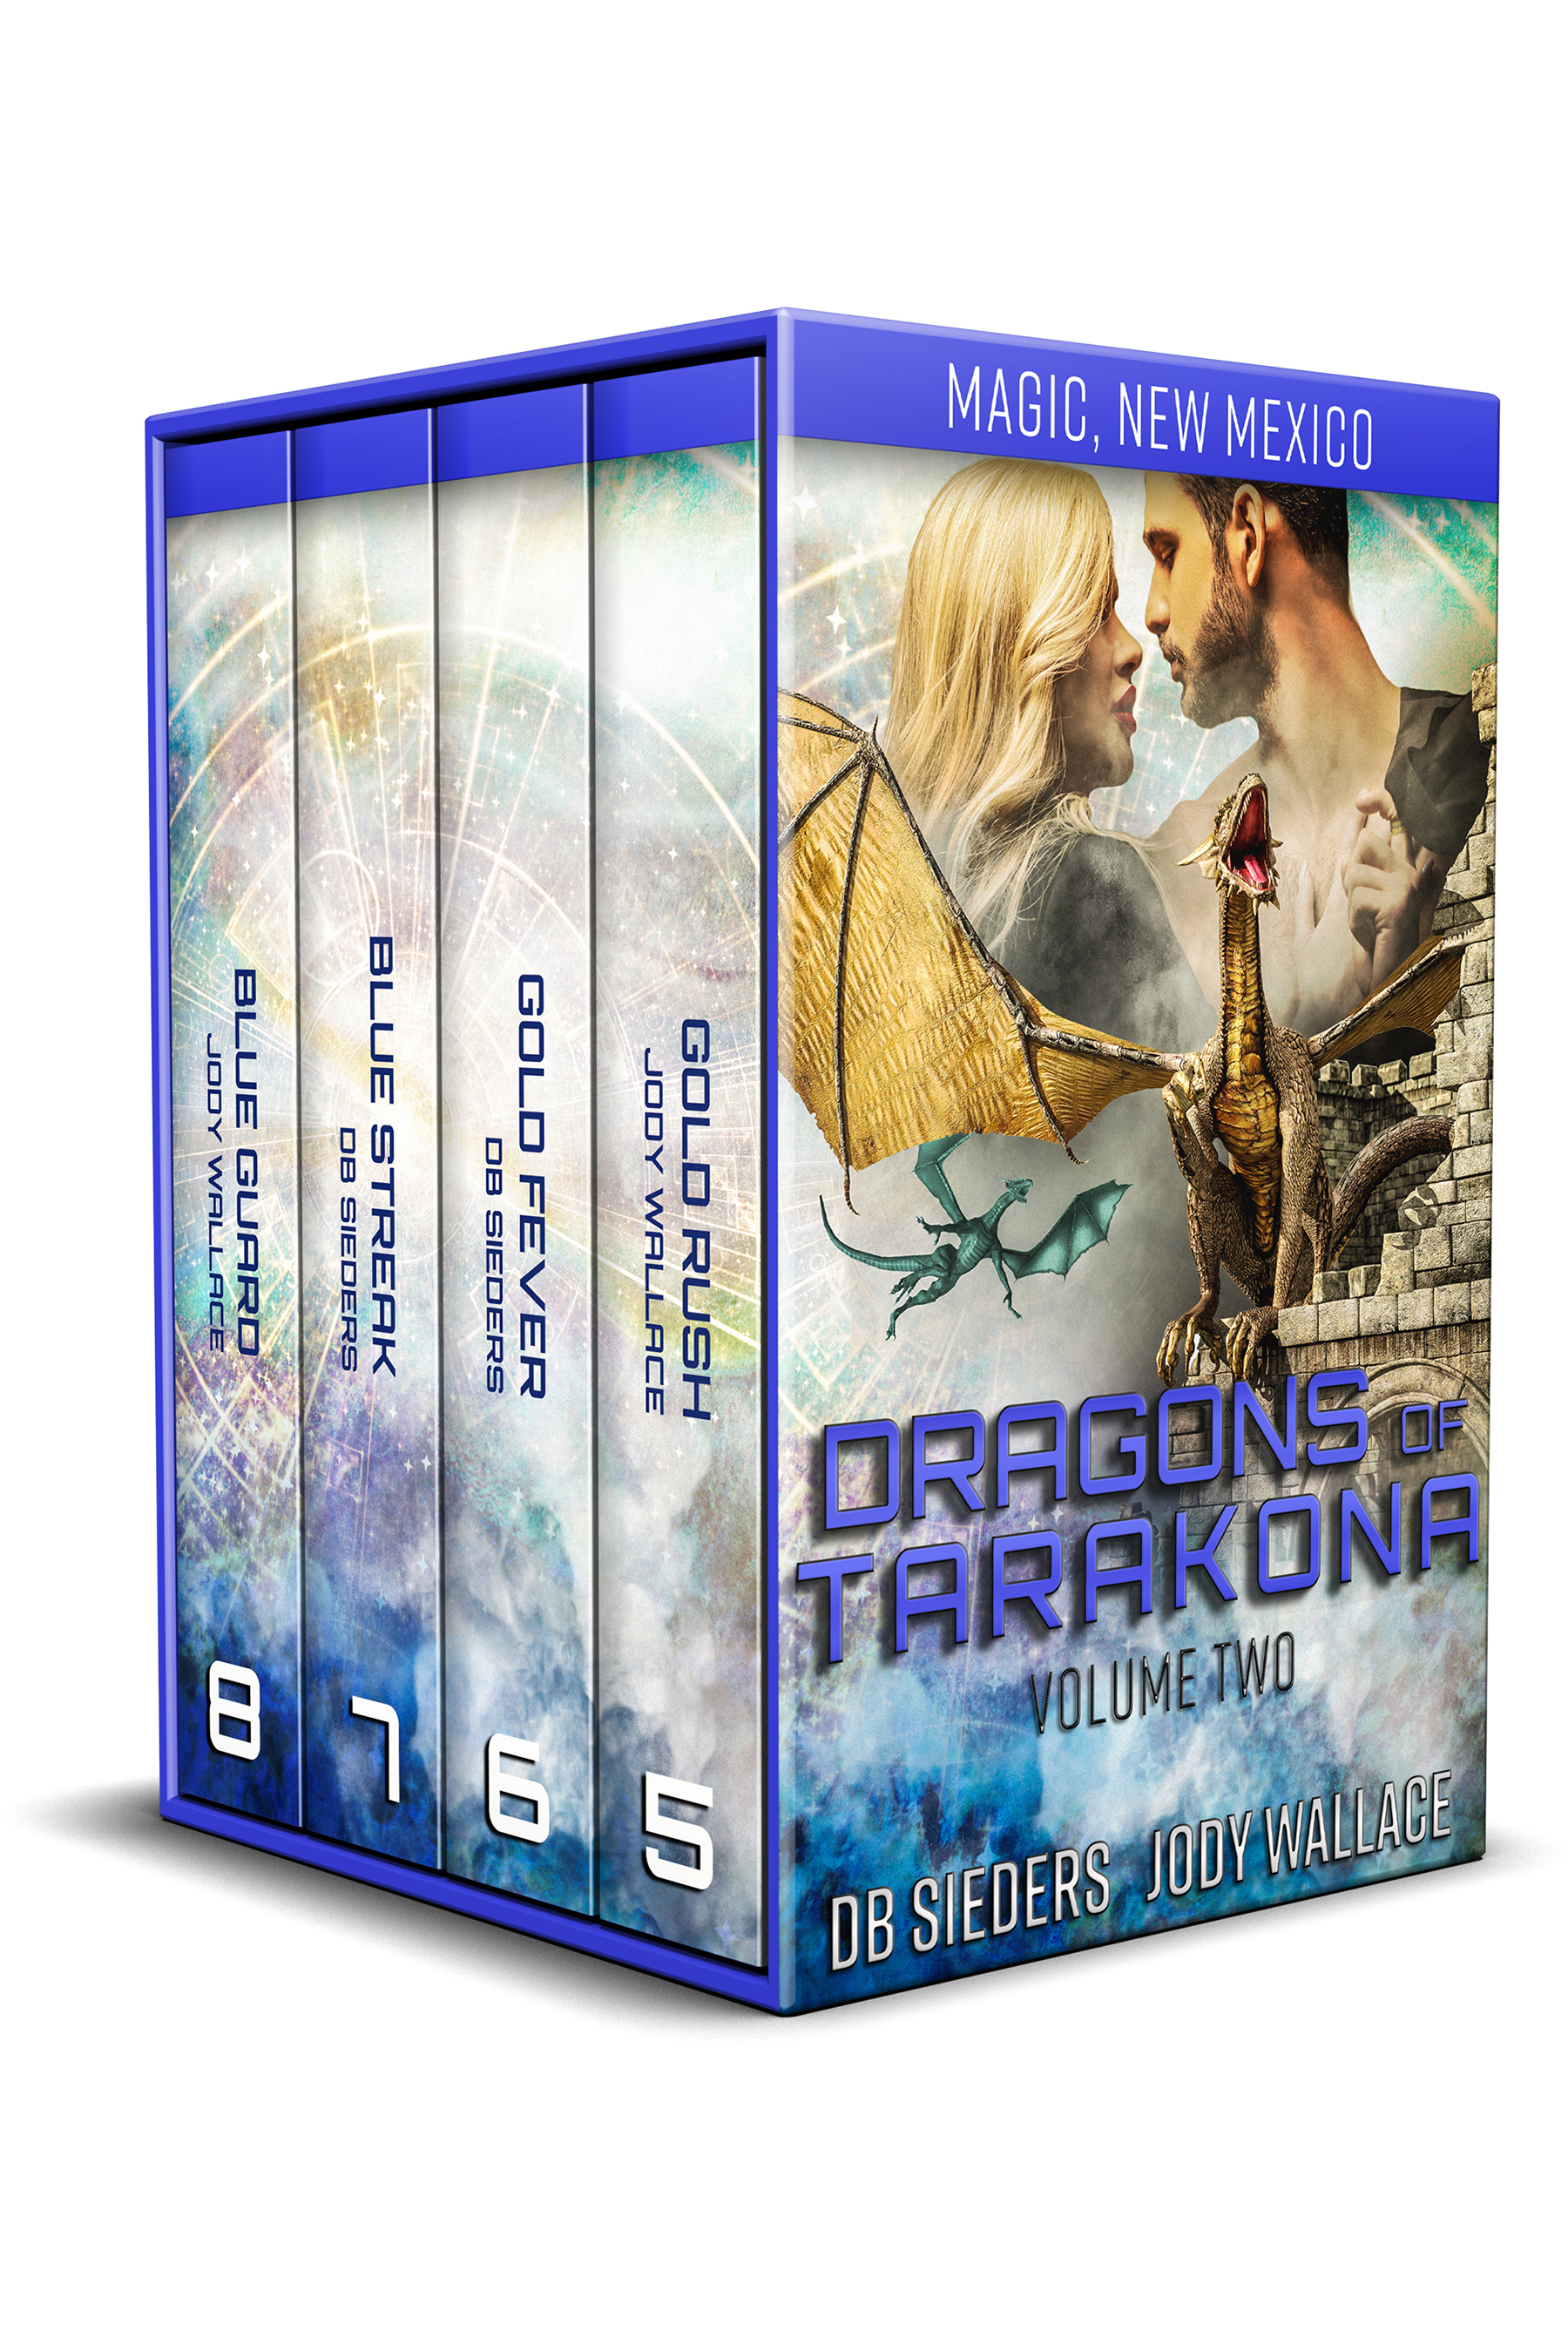 a box set of covers for dragons of tarakona books 5-8